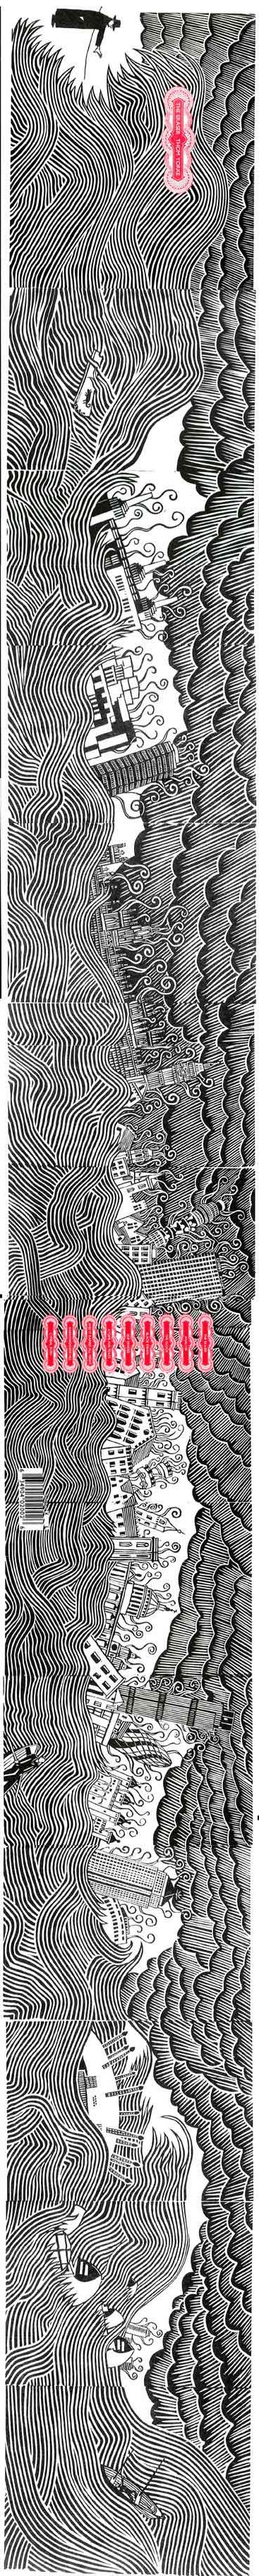 Beautiful illustration by Stanley Donwood on Thom Yorke's album The Eraser Album. Donwood's cover artwork for the album was announced the winner of the Best Art Vinyl award of 2006. (tilt your head to see it)